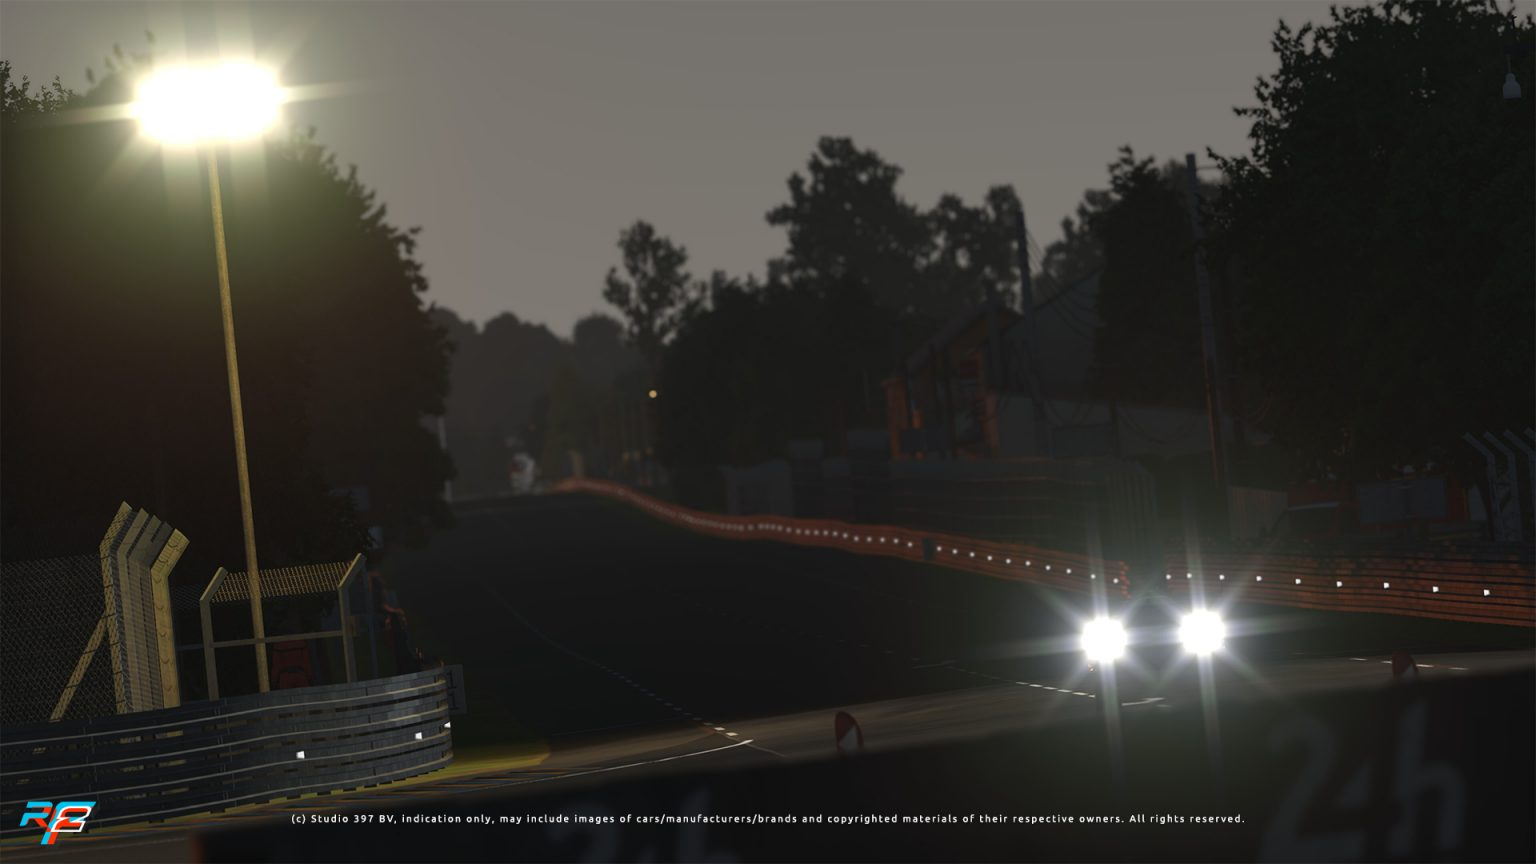 rf2-update-4-jpg rF2 | Huge Update Adds Berlin E-Prix, Broadcasting Tools, GFX Updates And More